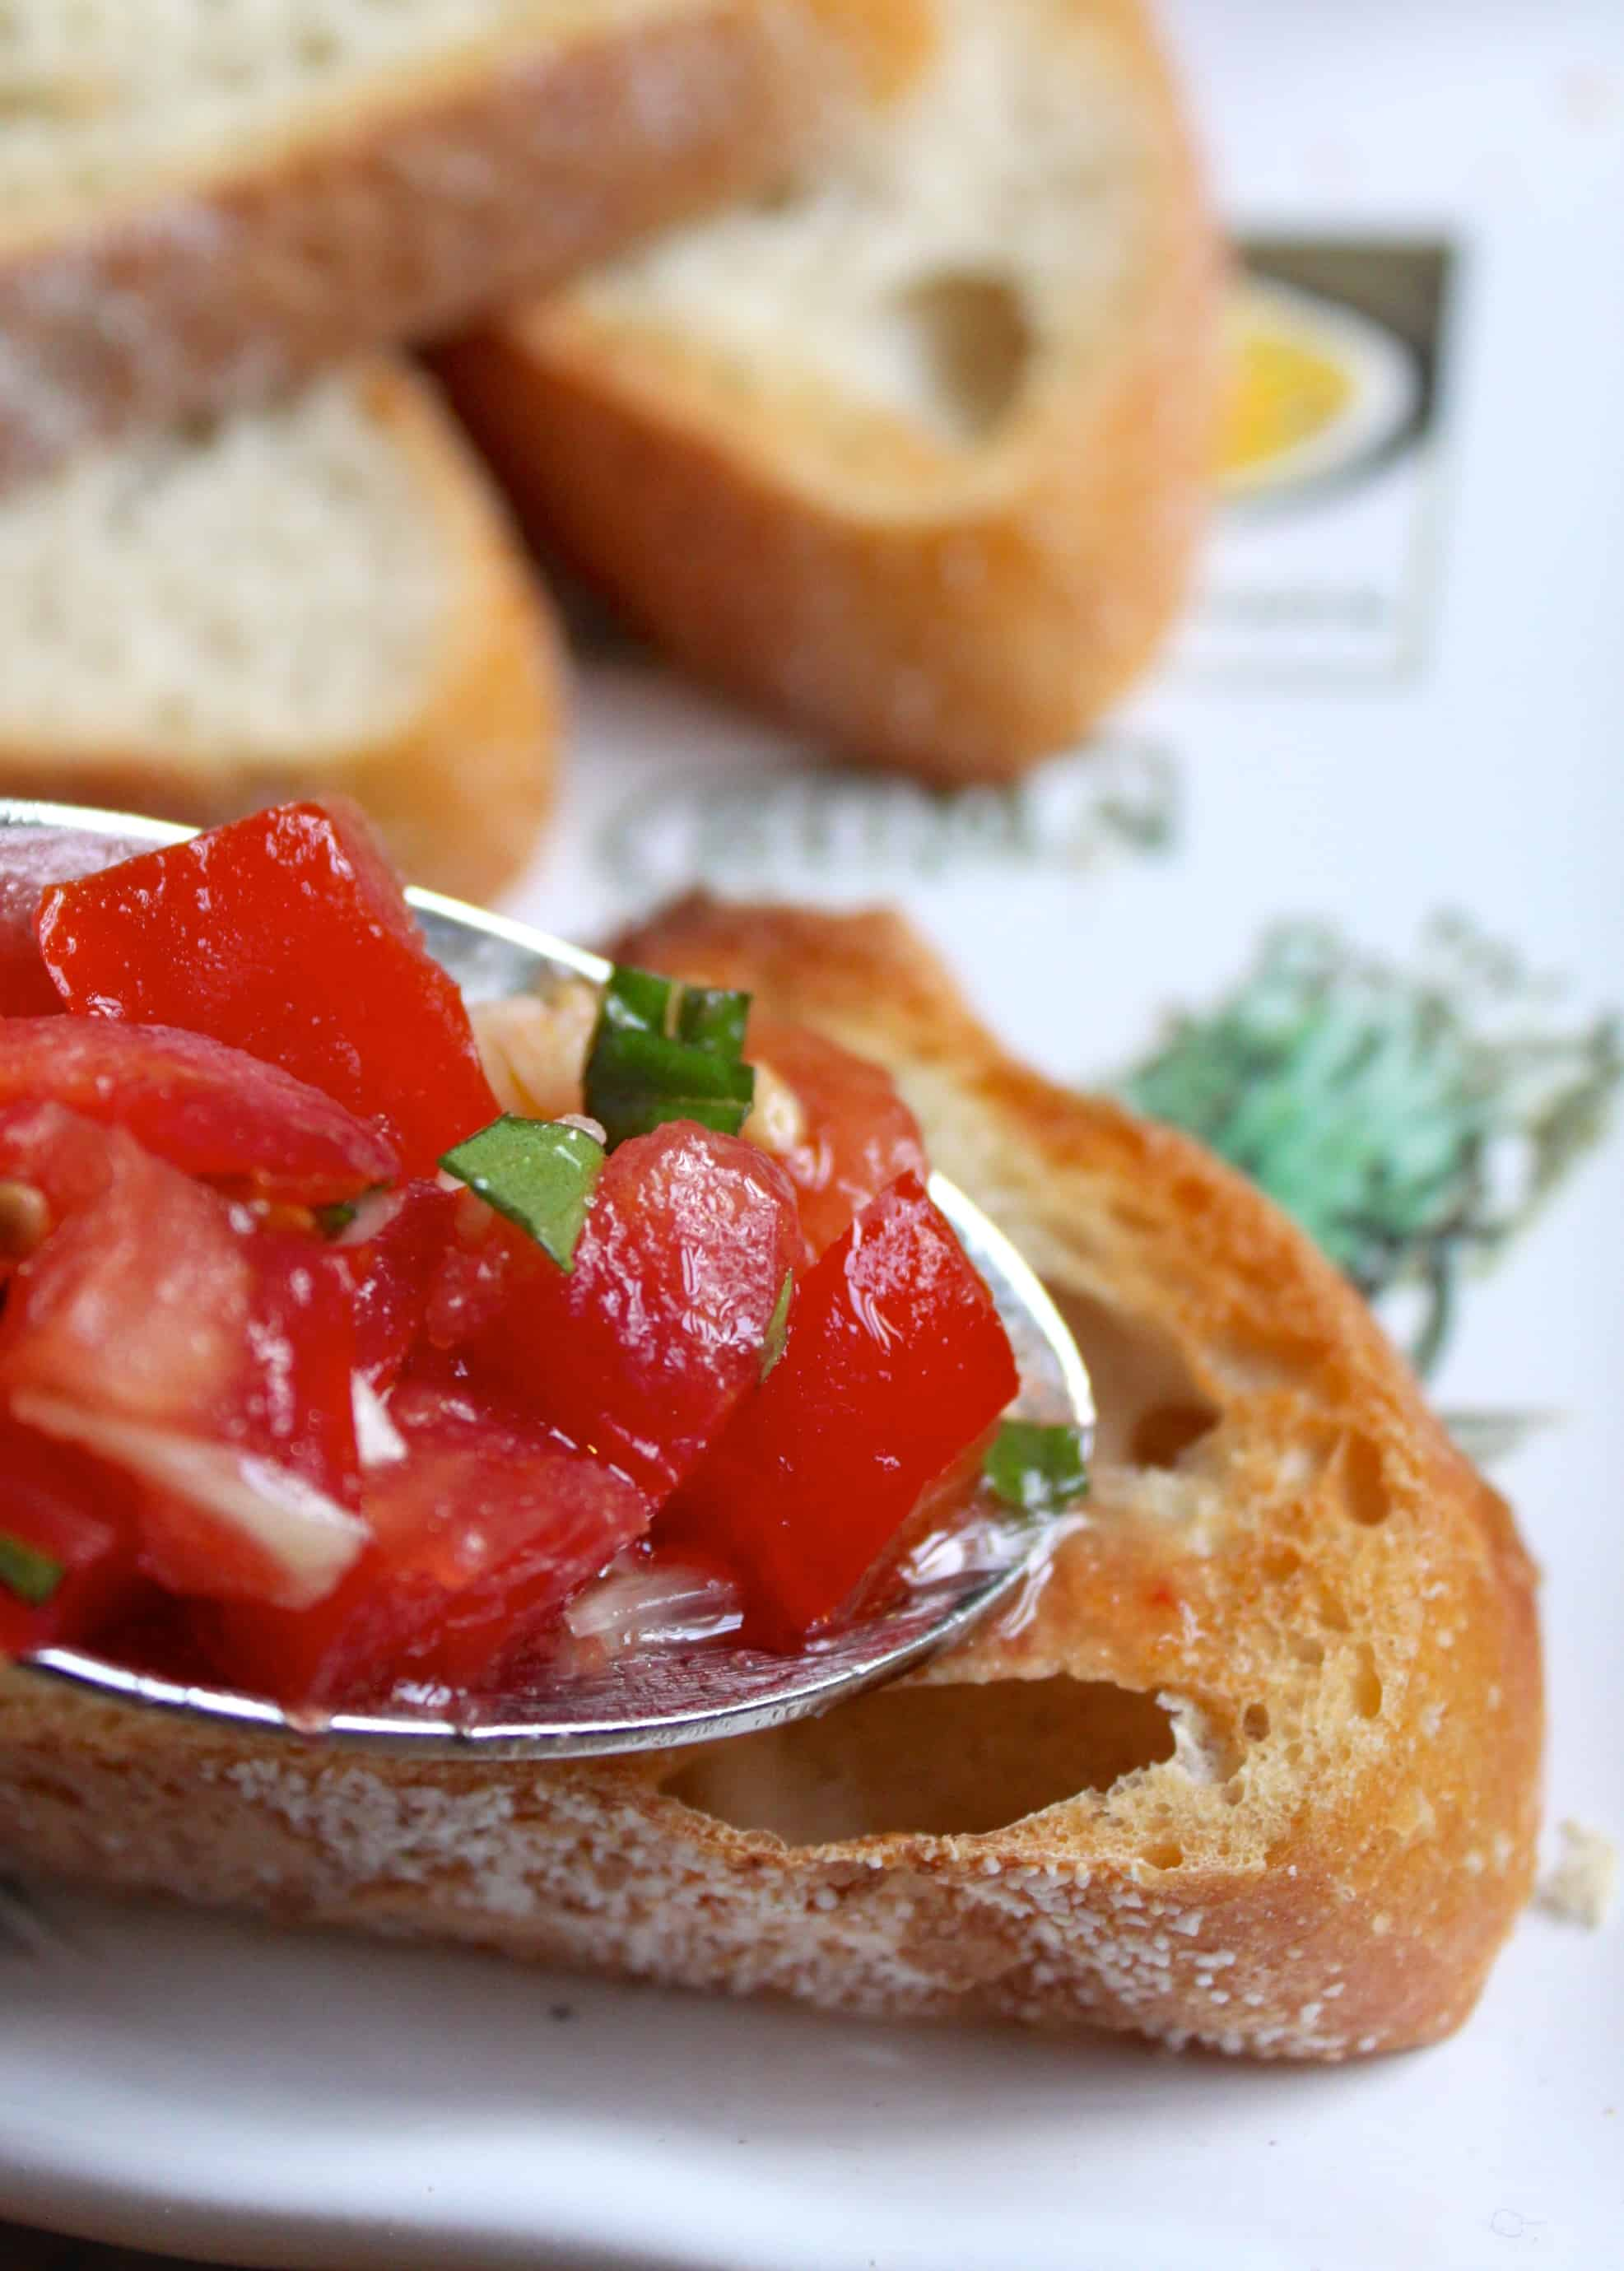 Cucina Antica Tomato Basil Heb Bruschetta I 39ll Even Tell You How To Pronounce It